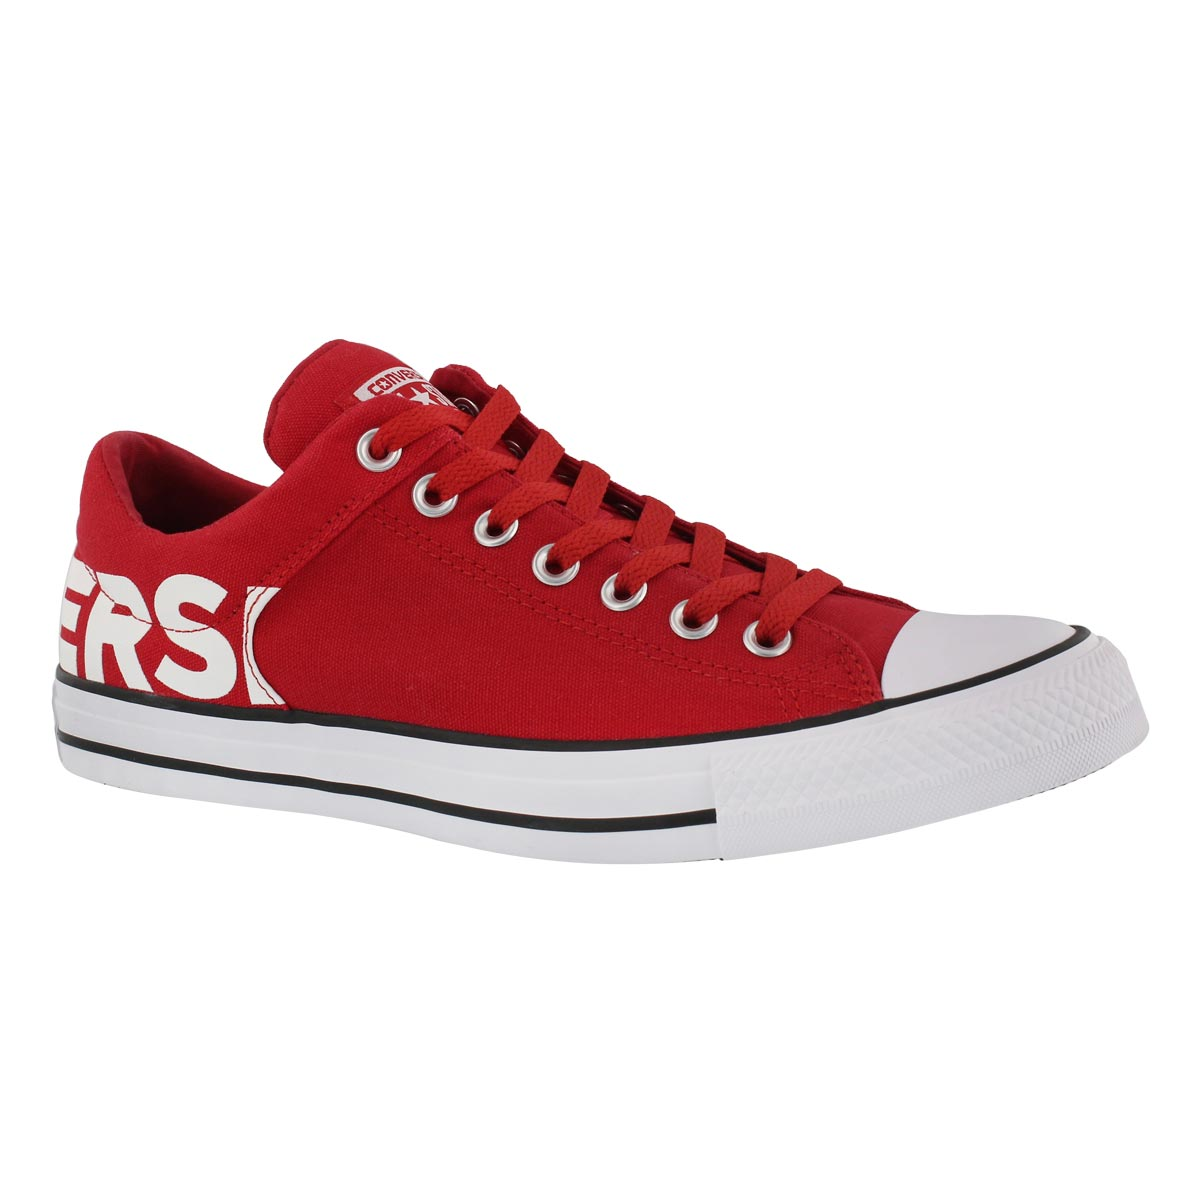 Men's CT ALL STAR WORDMARK red/white sneakers